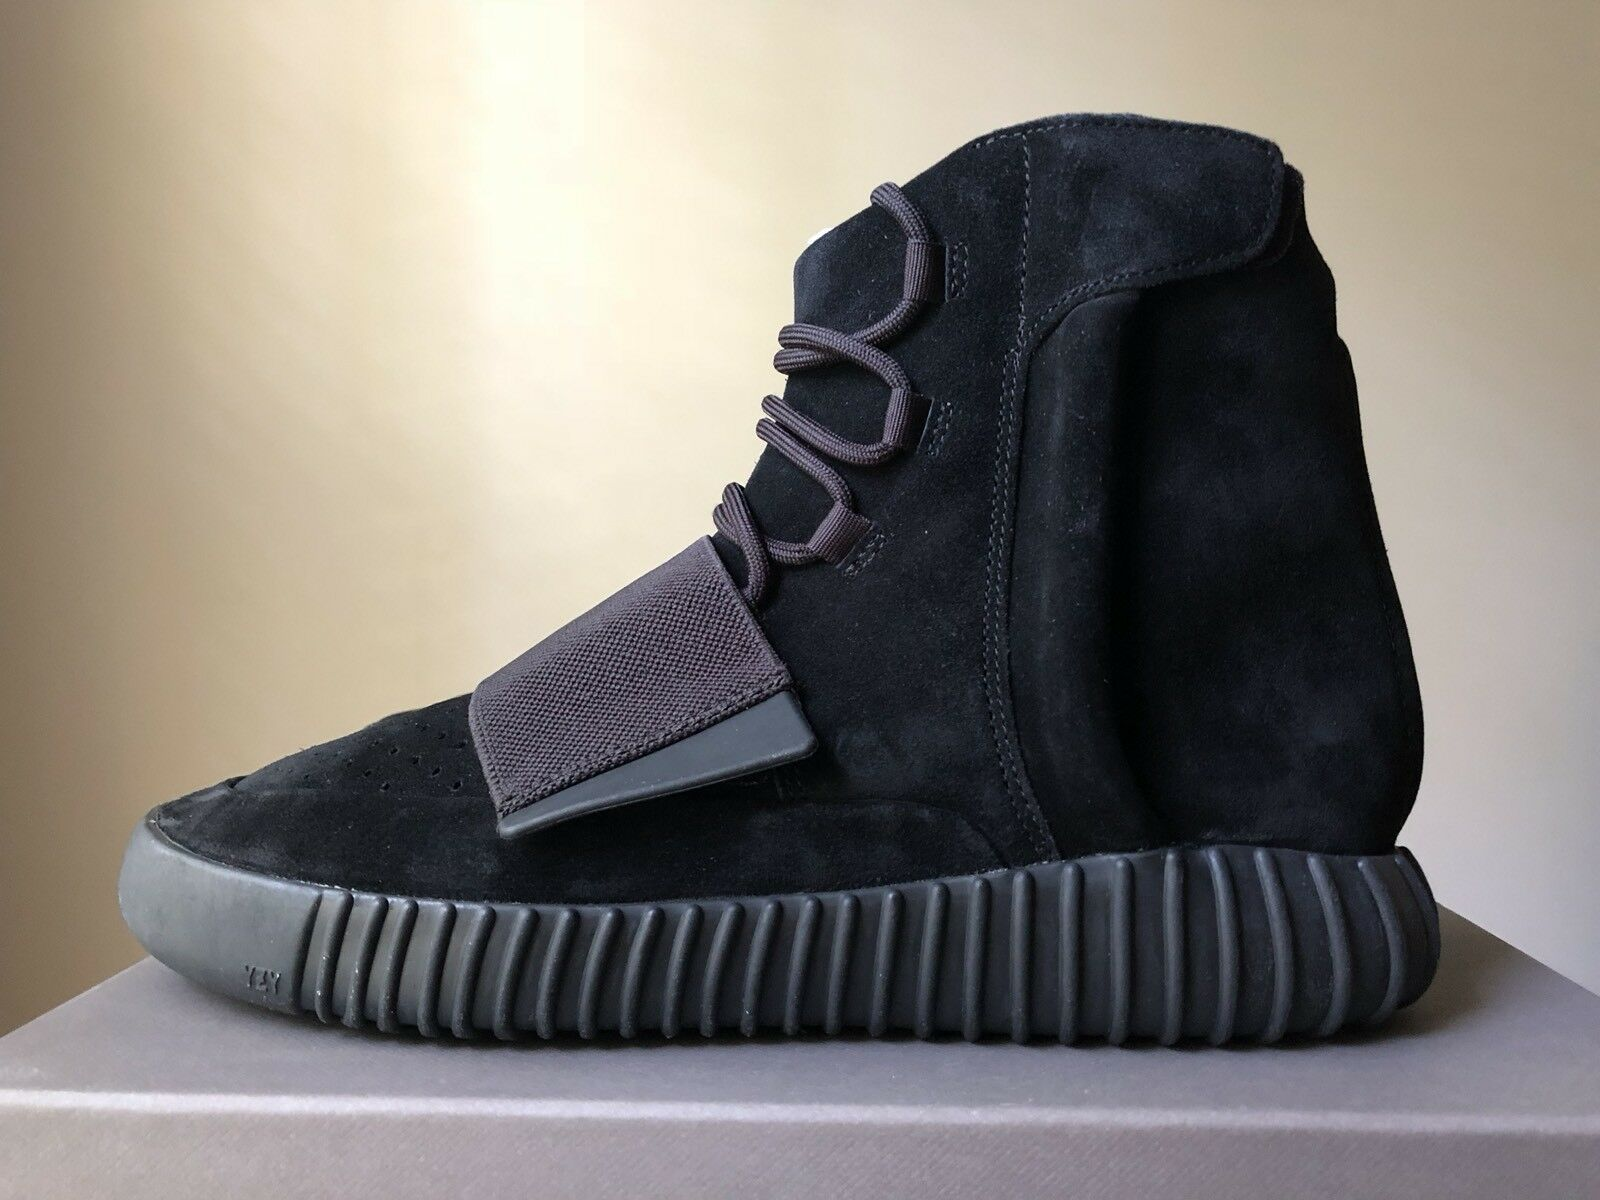 Adidas Yeezy Boost 750 Triple Black BB1839 Size US 10 100% Authentic